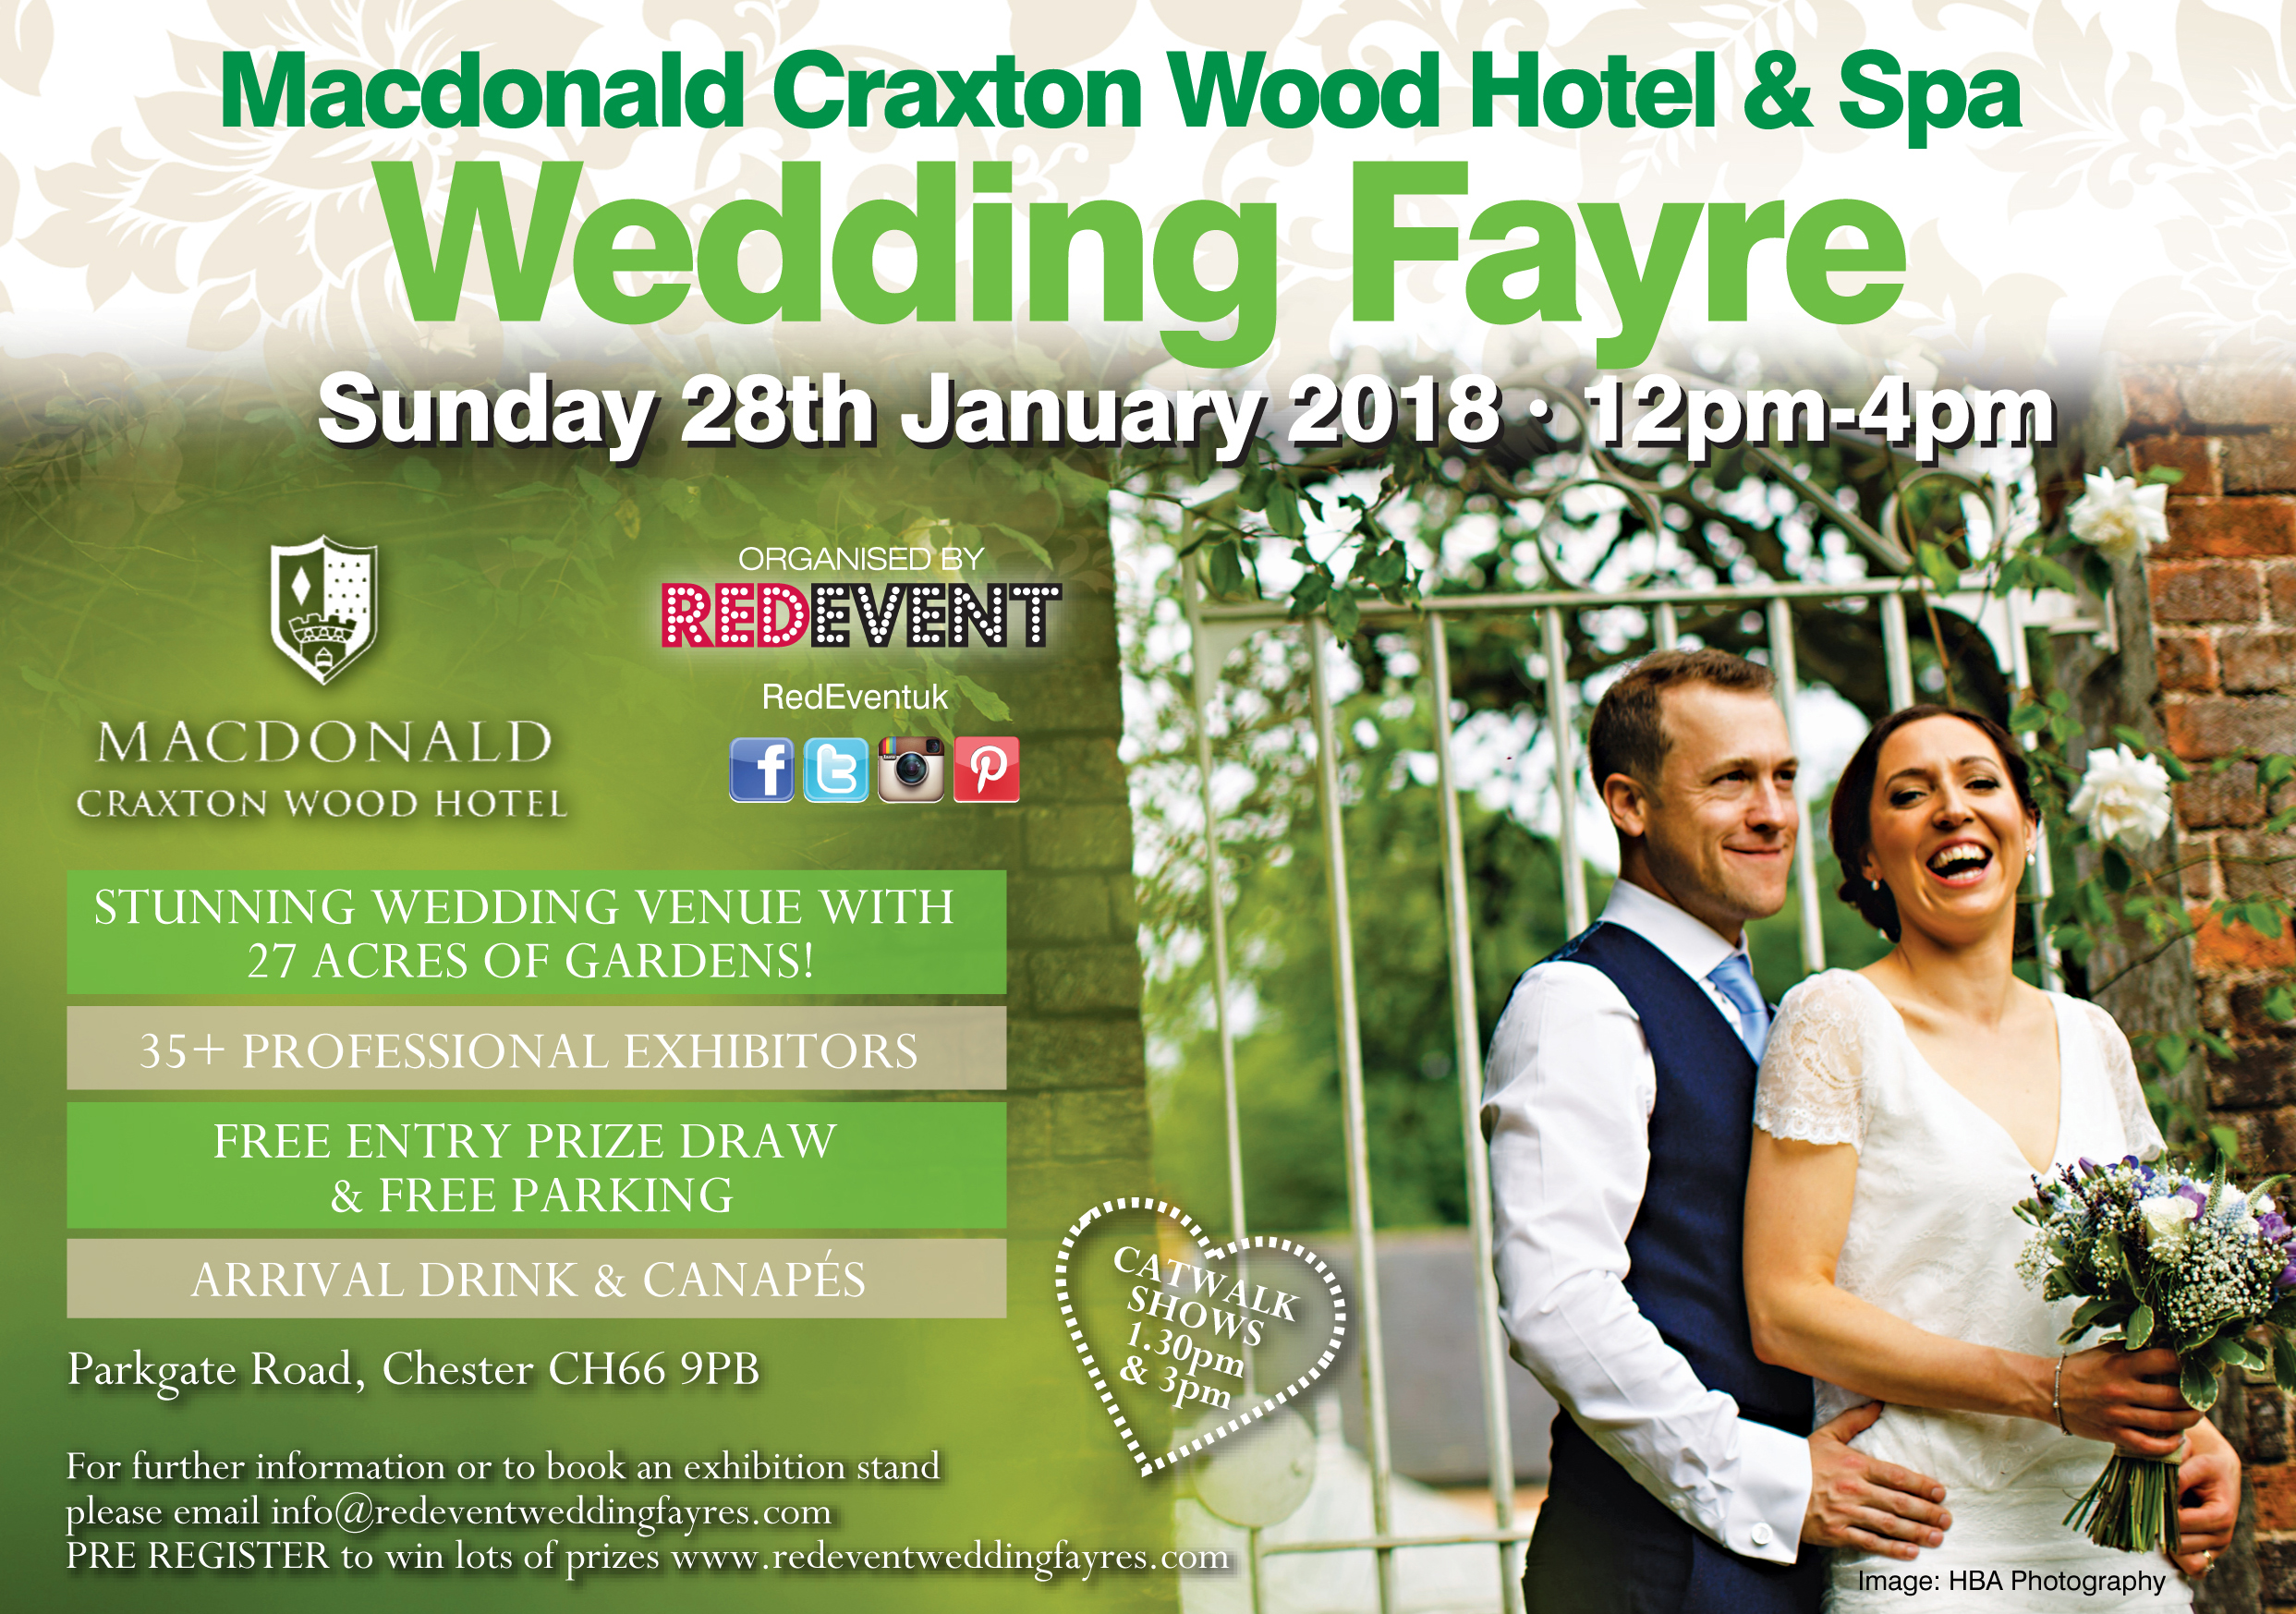 Macdonald Craxton Wood Wedding Fayre flyer www.redeventweddingfayres.com